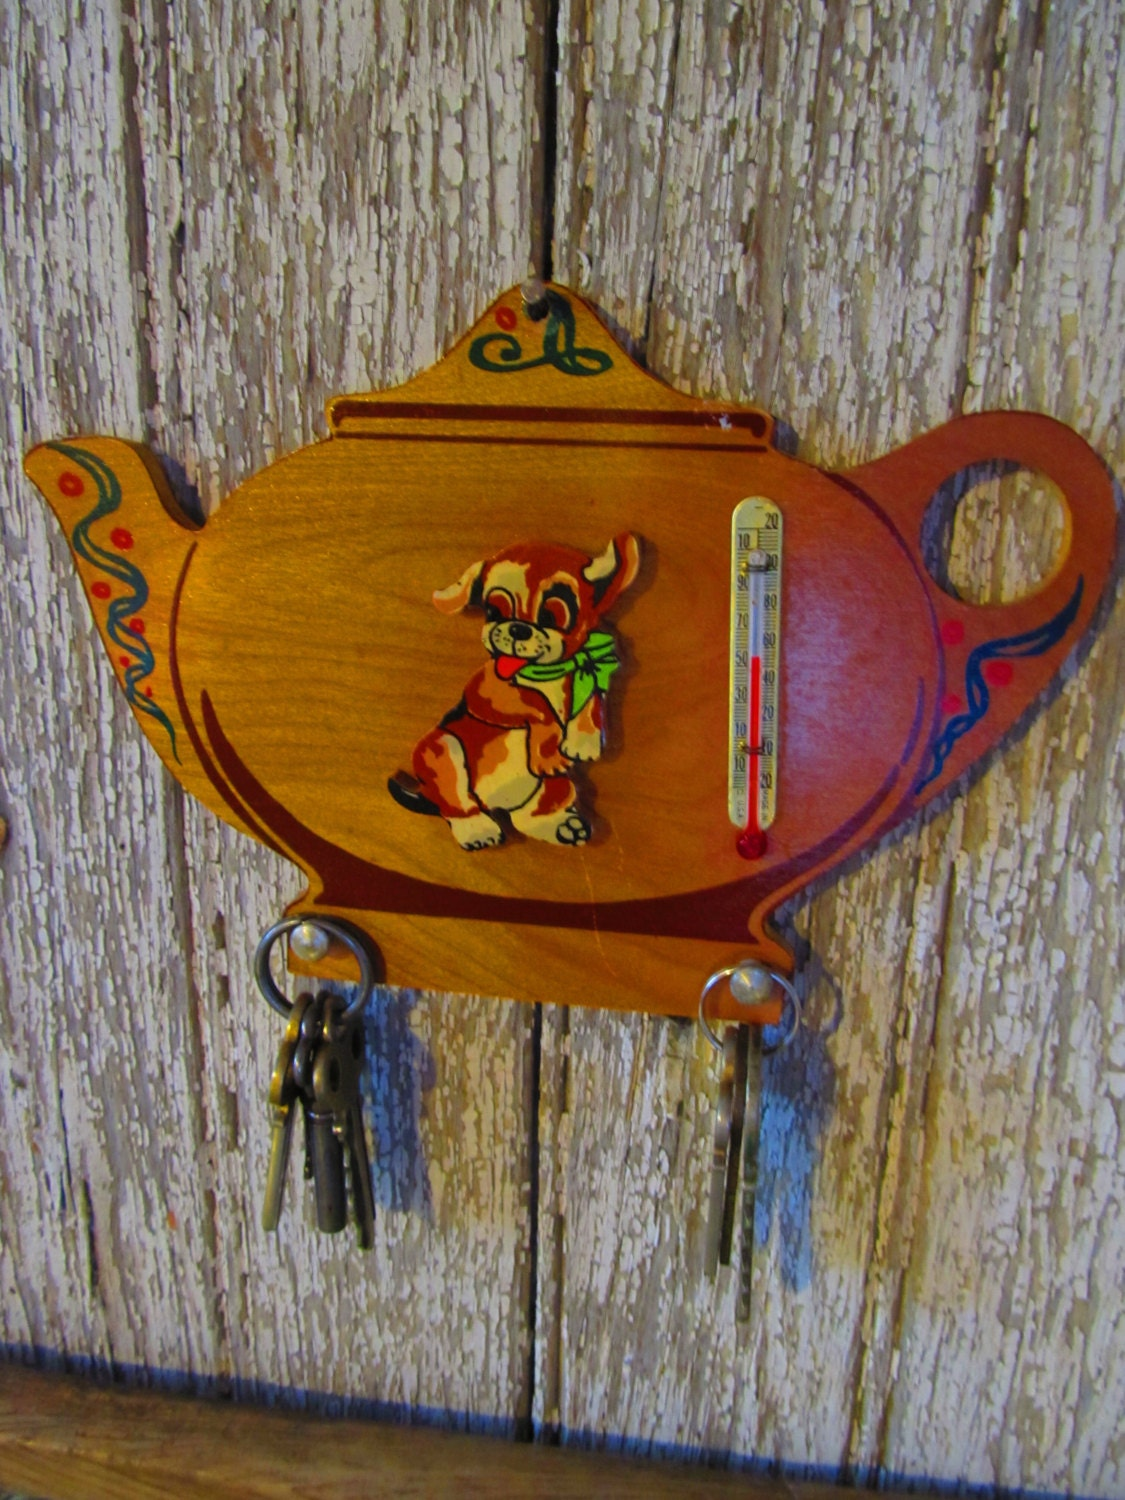 Vintage teapot key holder vintage wall decor by for Mural key holder